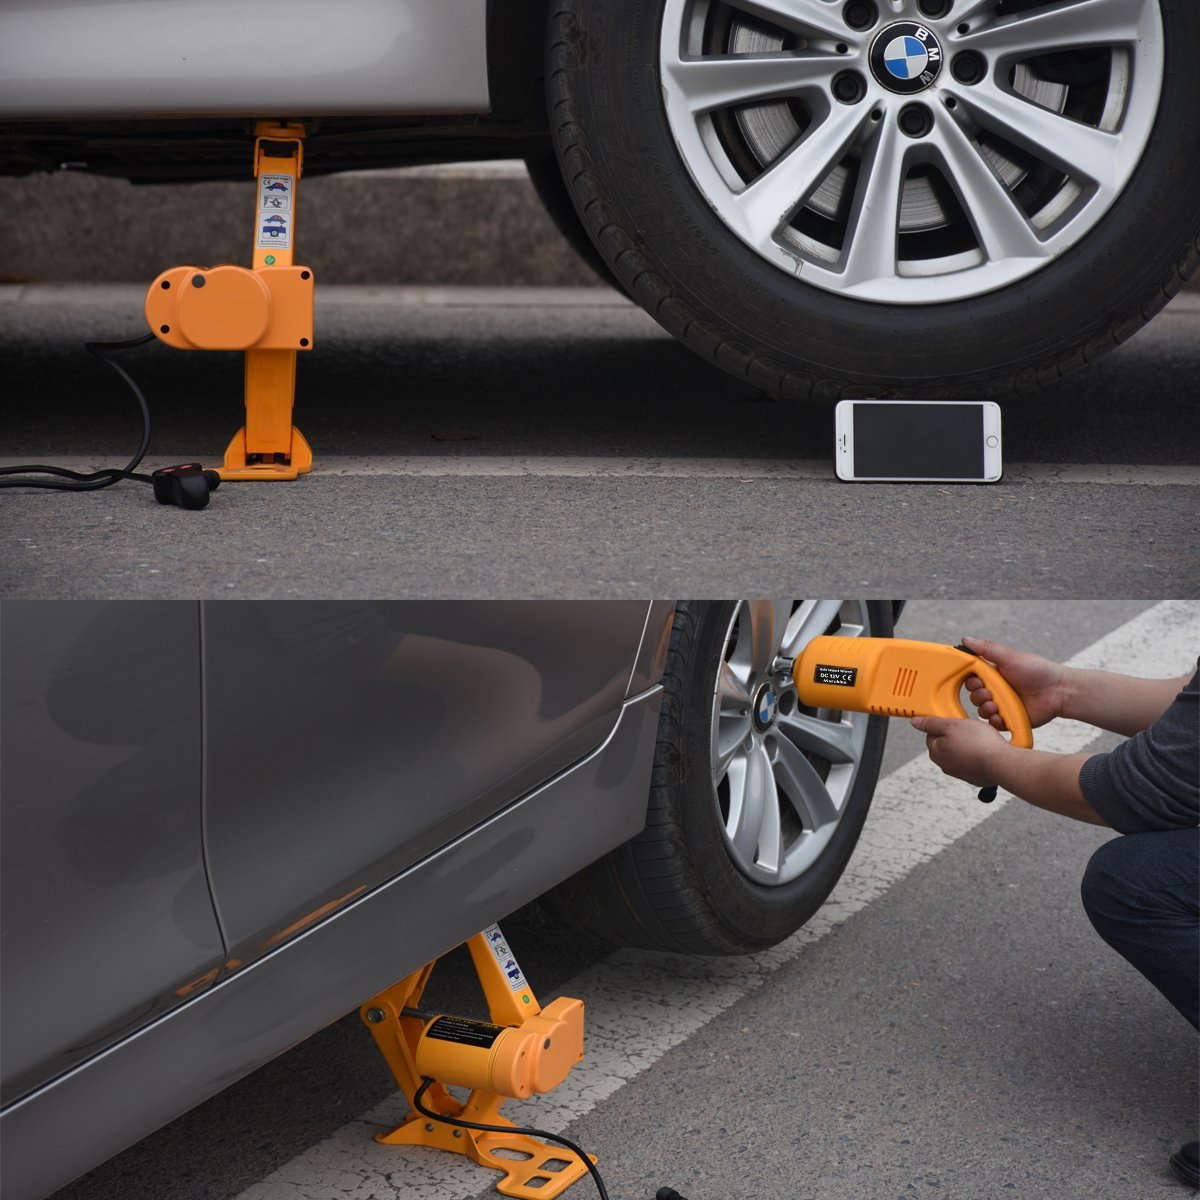 MarchInn 12V DC 3T(6600lb) Electric Car Jack - Double Saddles for Vehicle and SUV - and Electric Impact Wrench with Wireless Remote by MarchInn (Image #7)